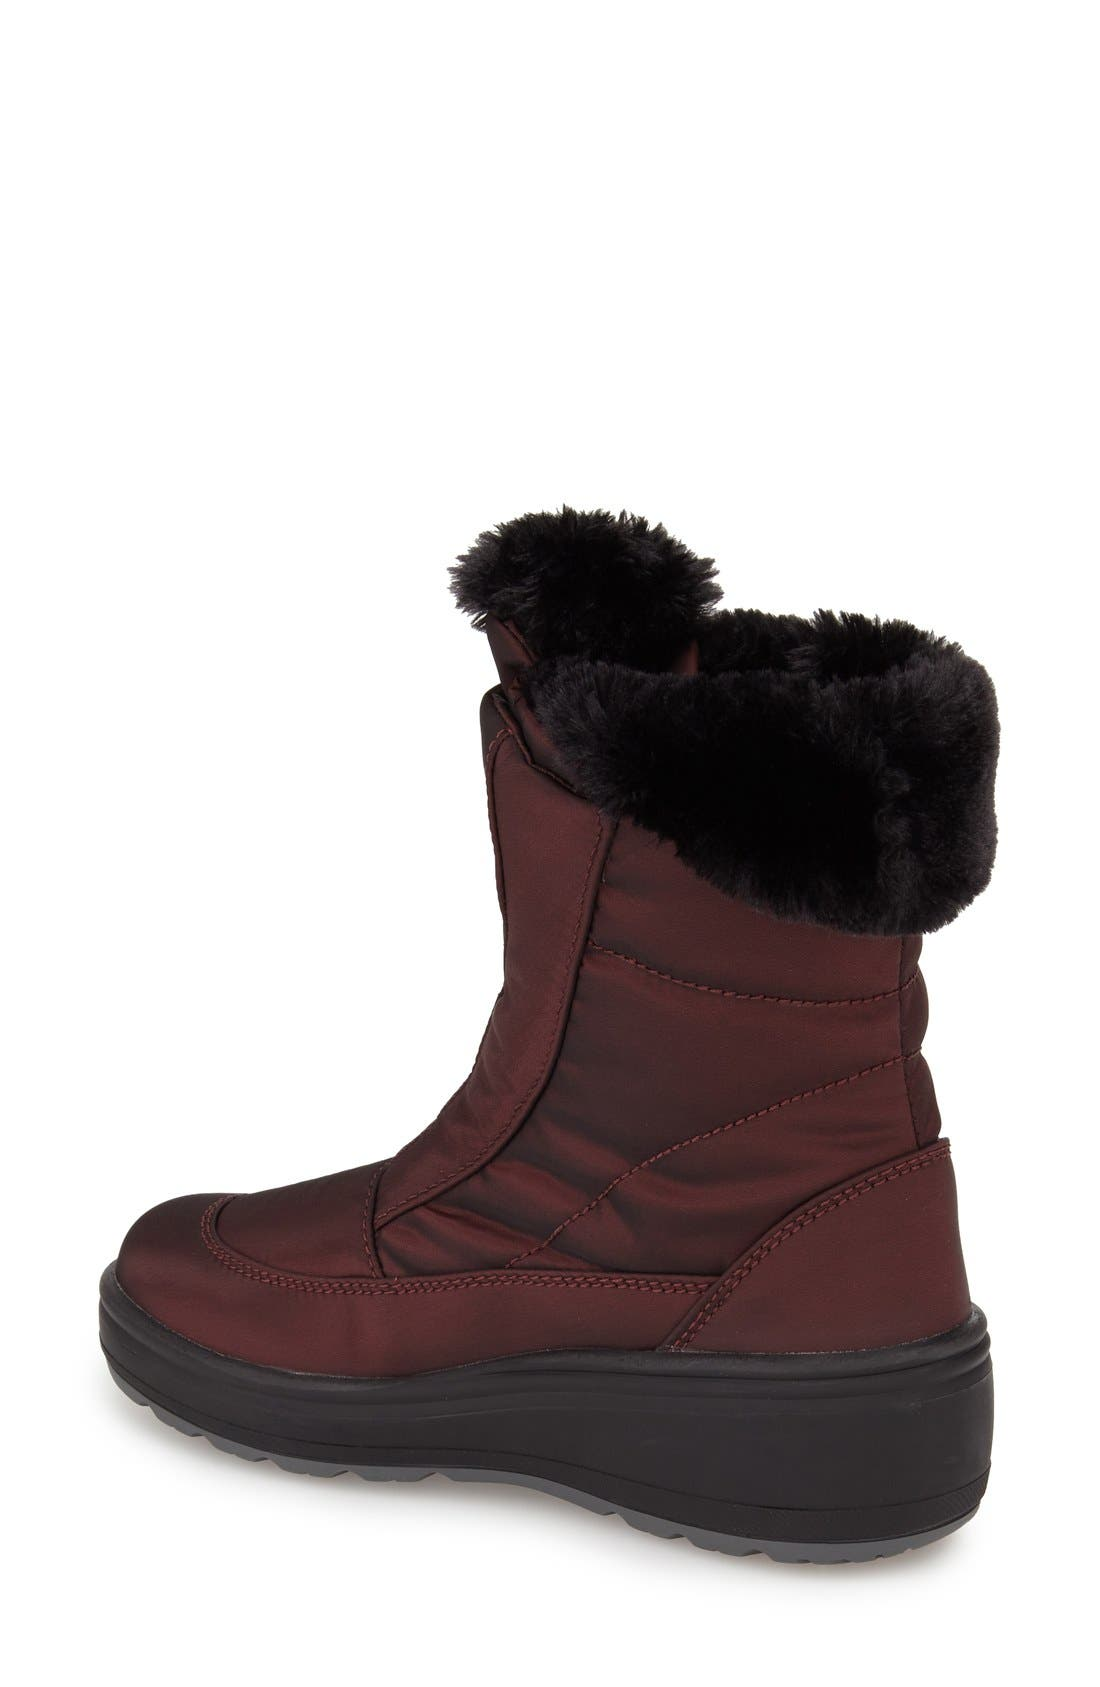 'Kimmi' Snow Boot,                             Alternate thumbnail 2, color,                             Burgundy Fabric